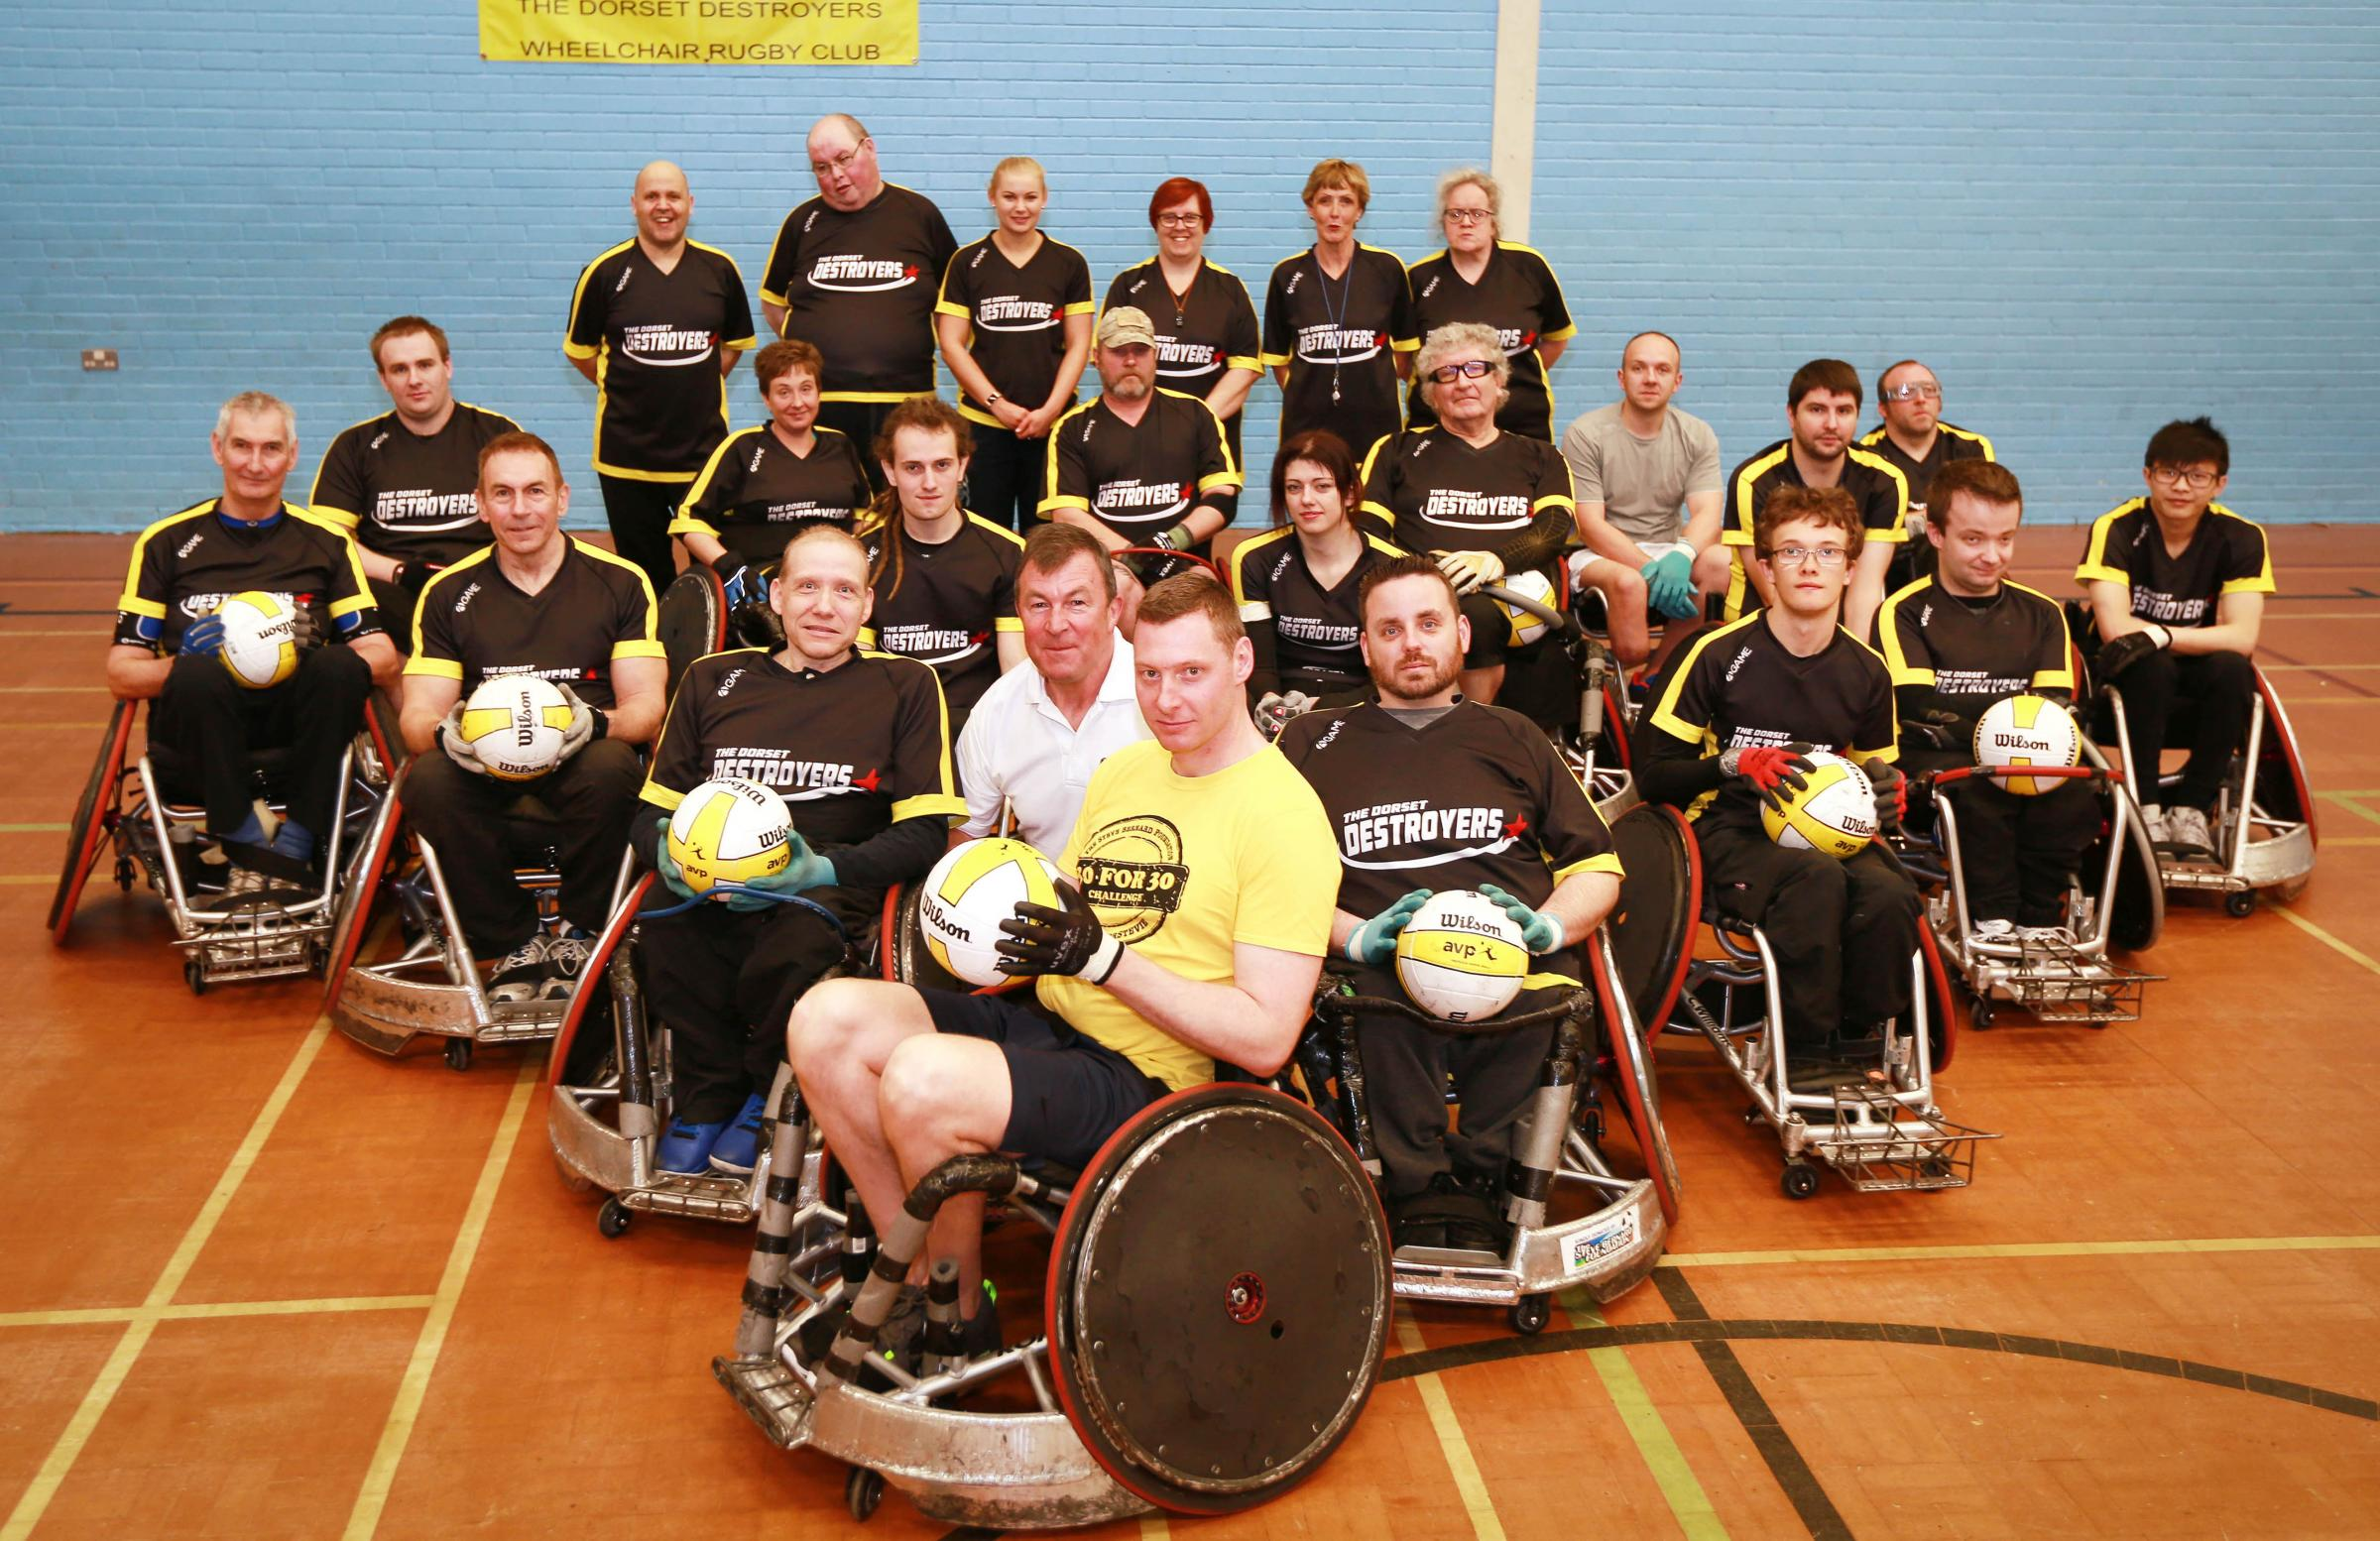 READY FOR ACTION: Nick Coombs with the Dorset Destroyers wheelchair rugby club